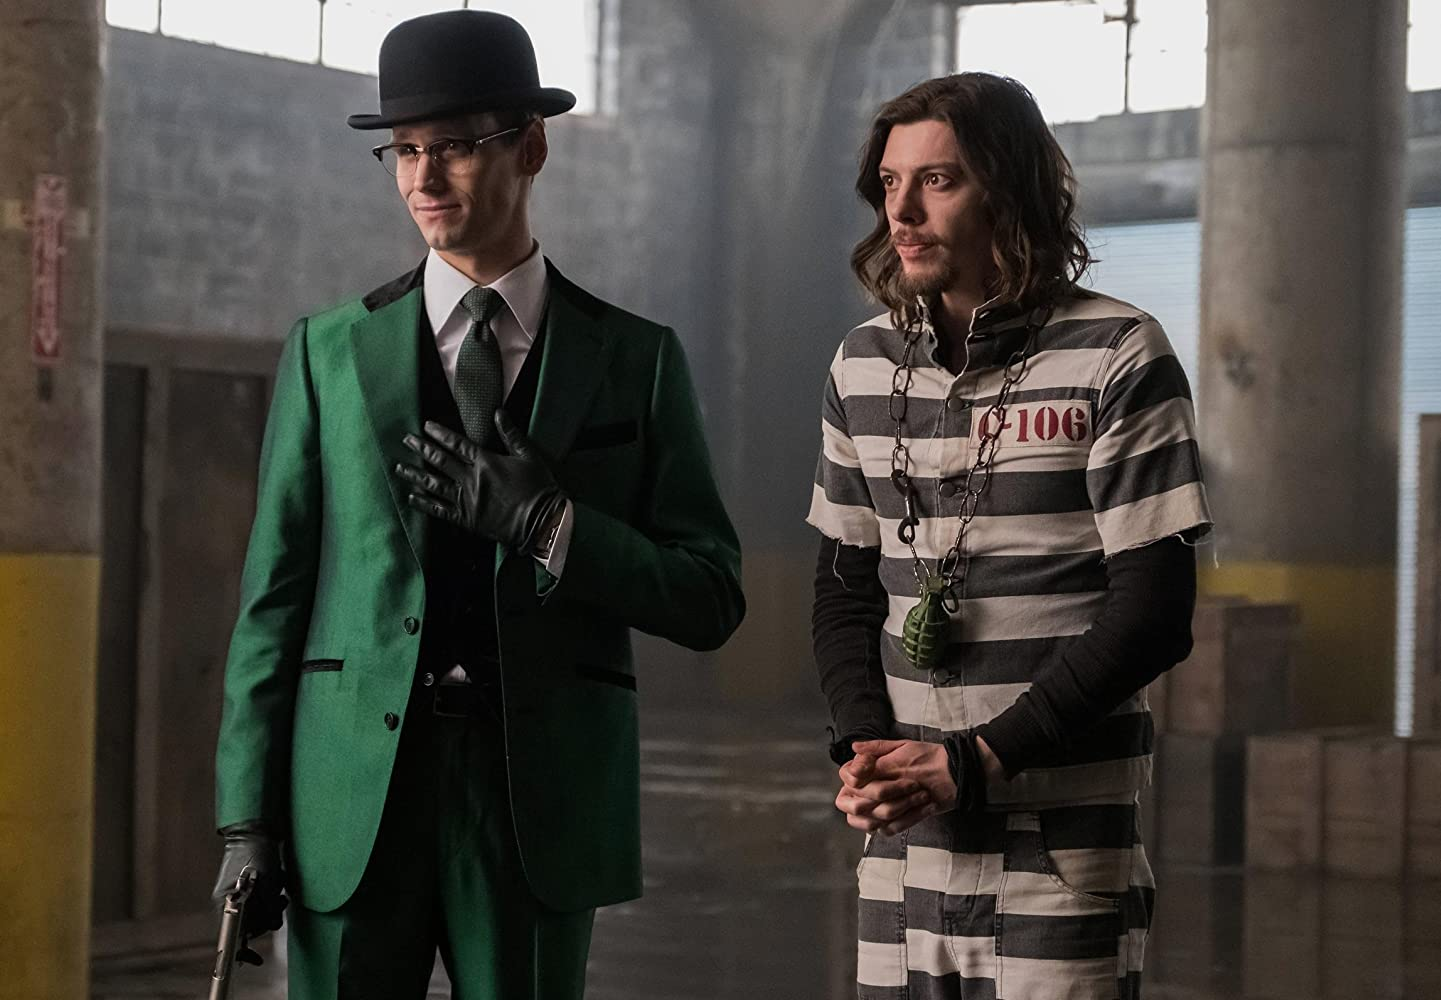 Gotham S03E06 – Mad City: Follow the White Rabbit